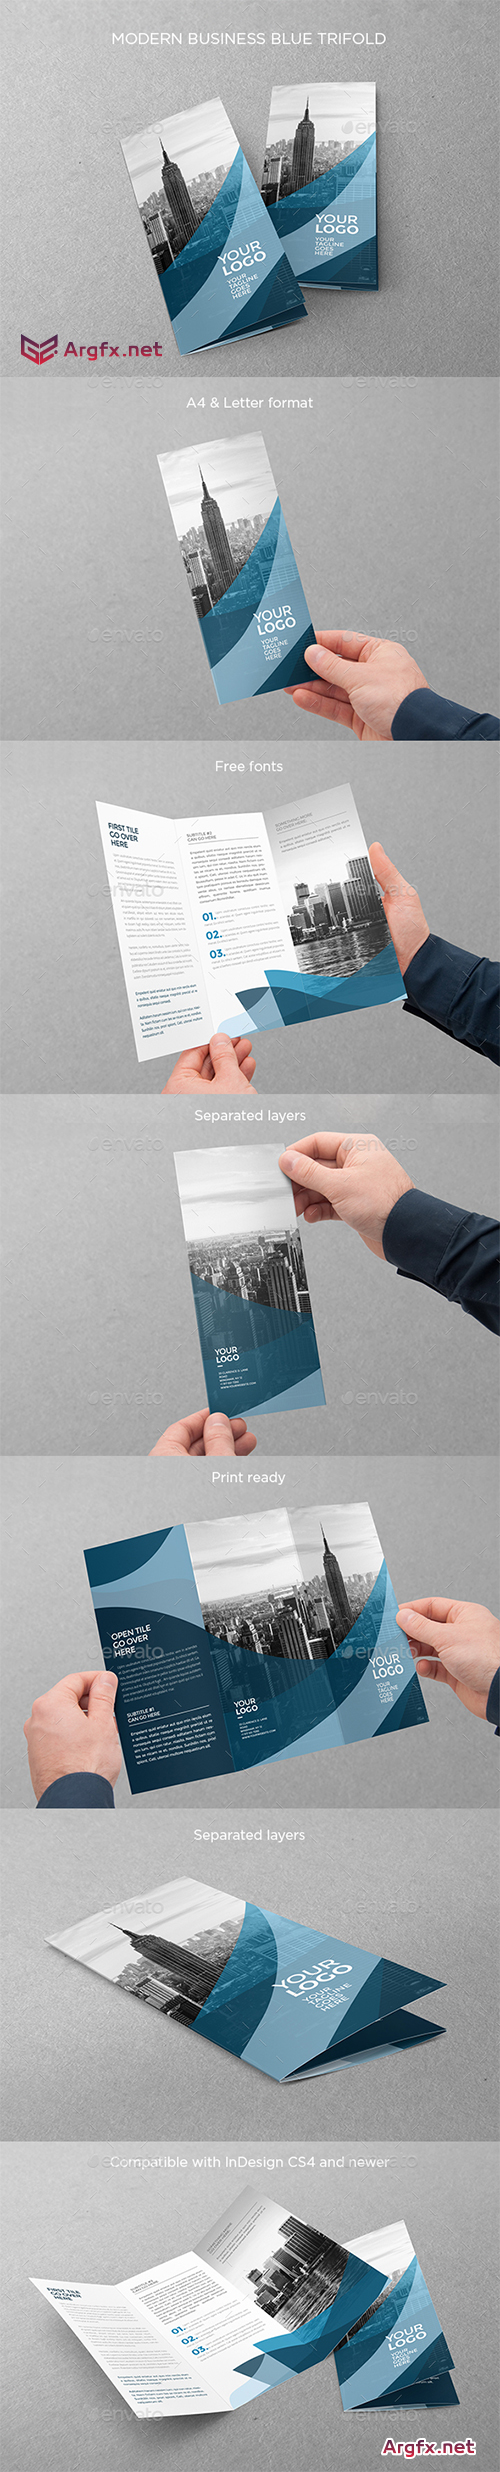 Modern Business Blue Trifold 15589257